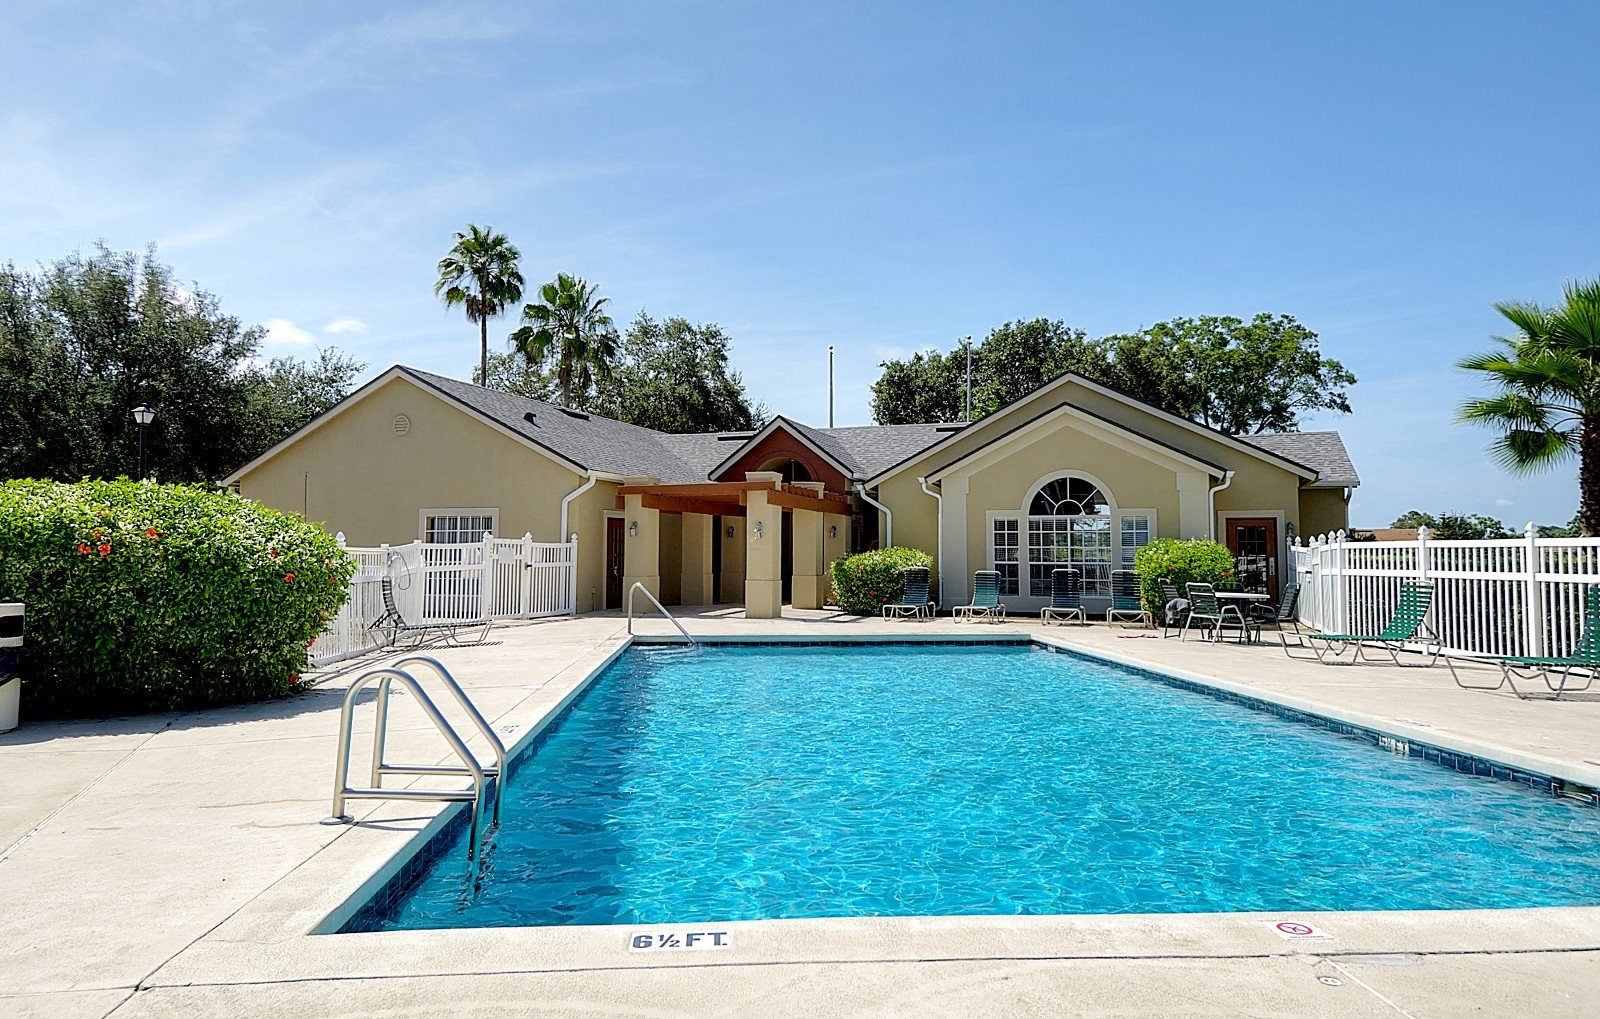 Pool Club House Orlando Florida